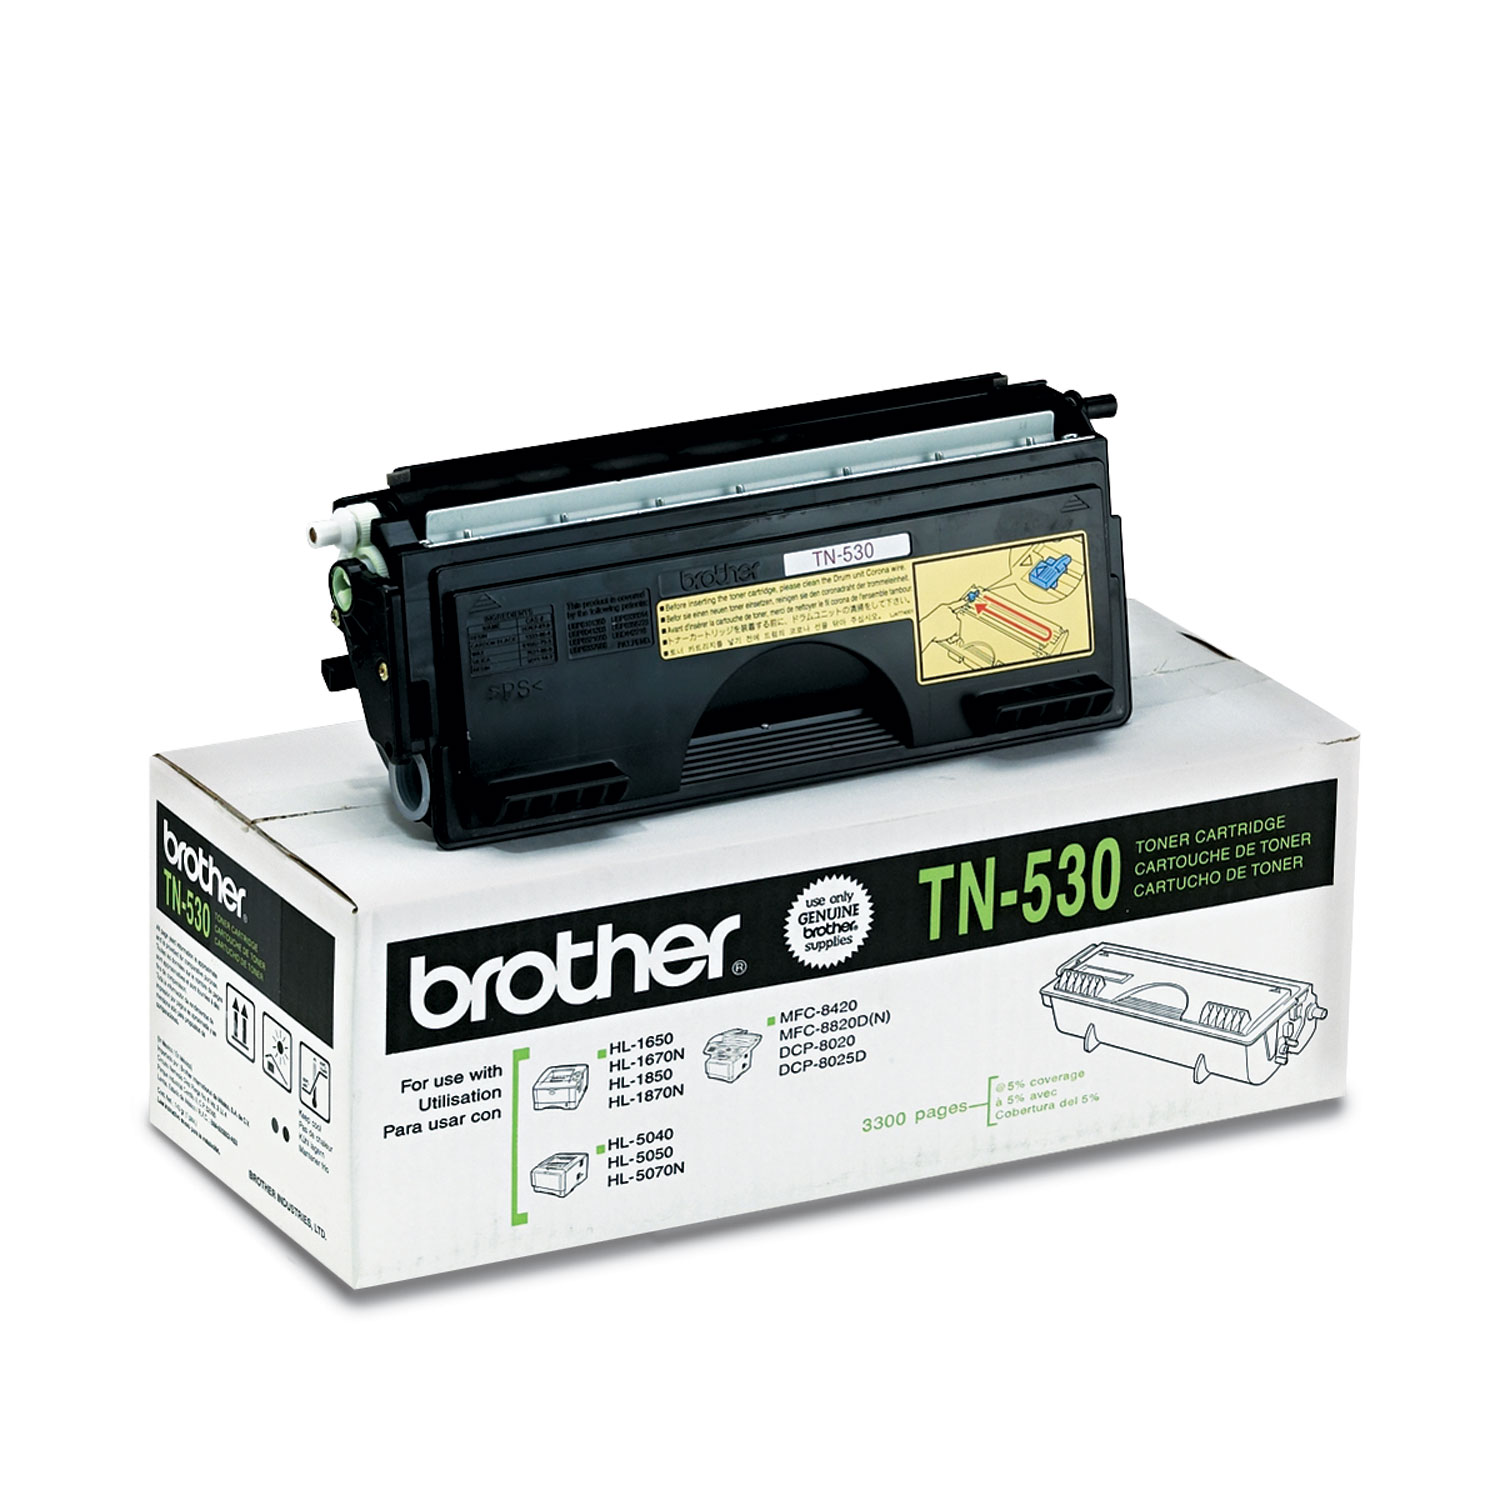 Driver for Brother HL-5050 CUPS Printer